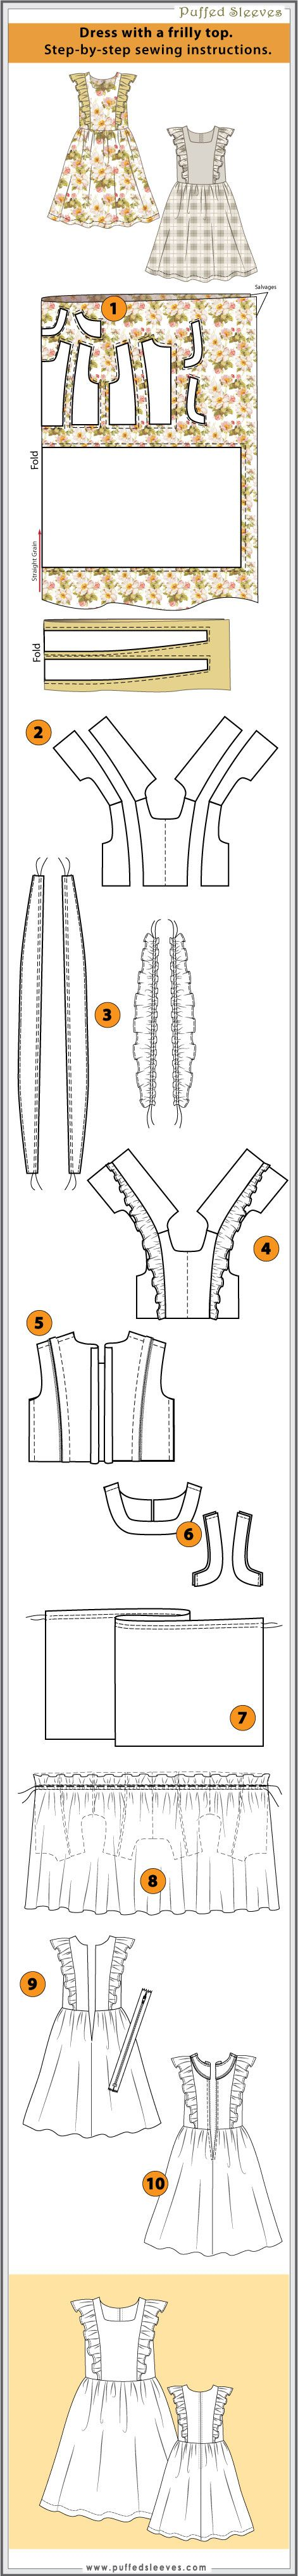 Dress with a frilly top. Step-by-step sewing instructions.